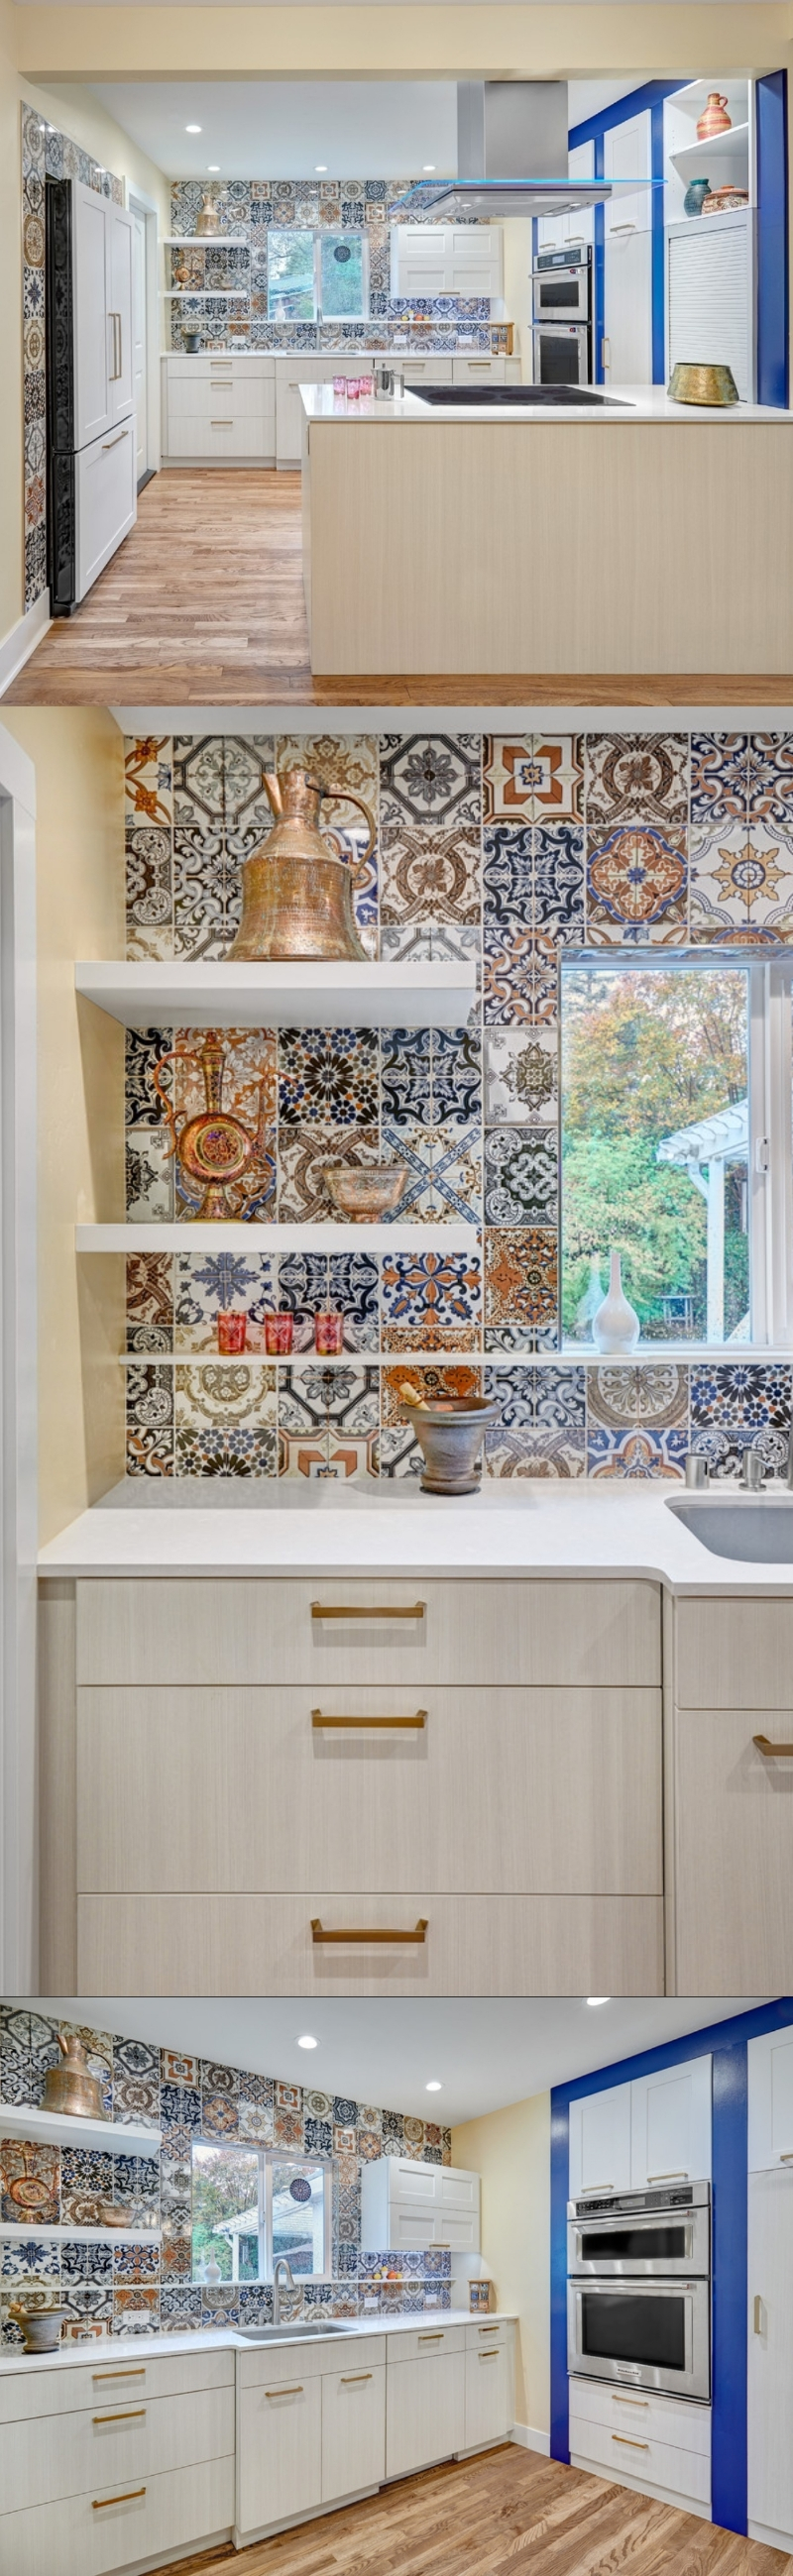 19 Kitchen Wall Decor Ideas 2019 Trends Diy Tips How To Decorate Must Have Kitchen